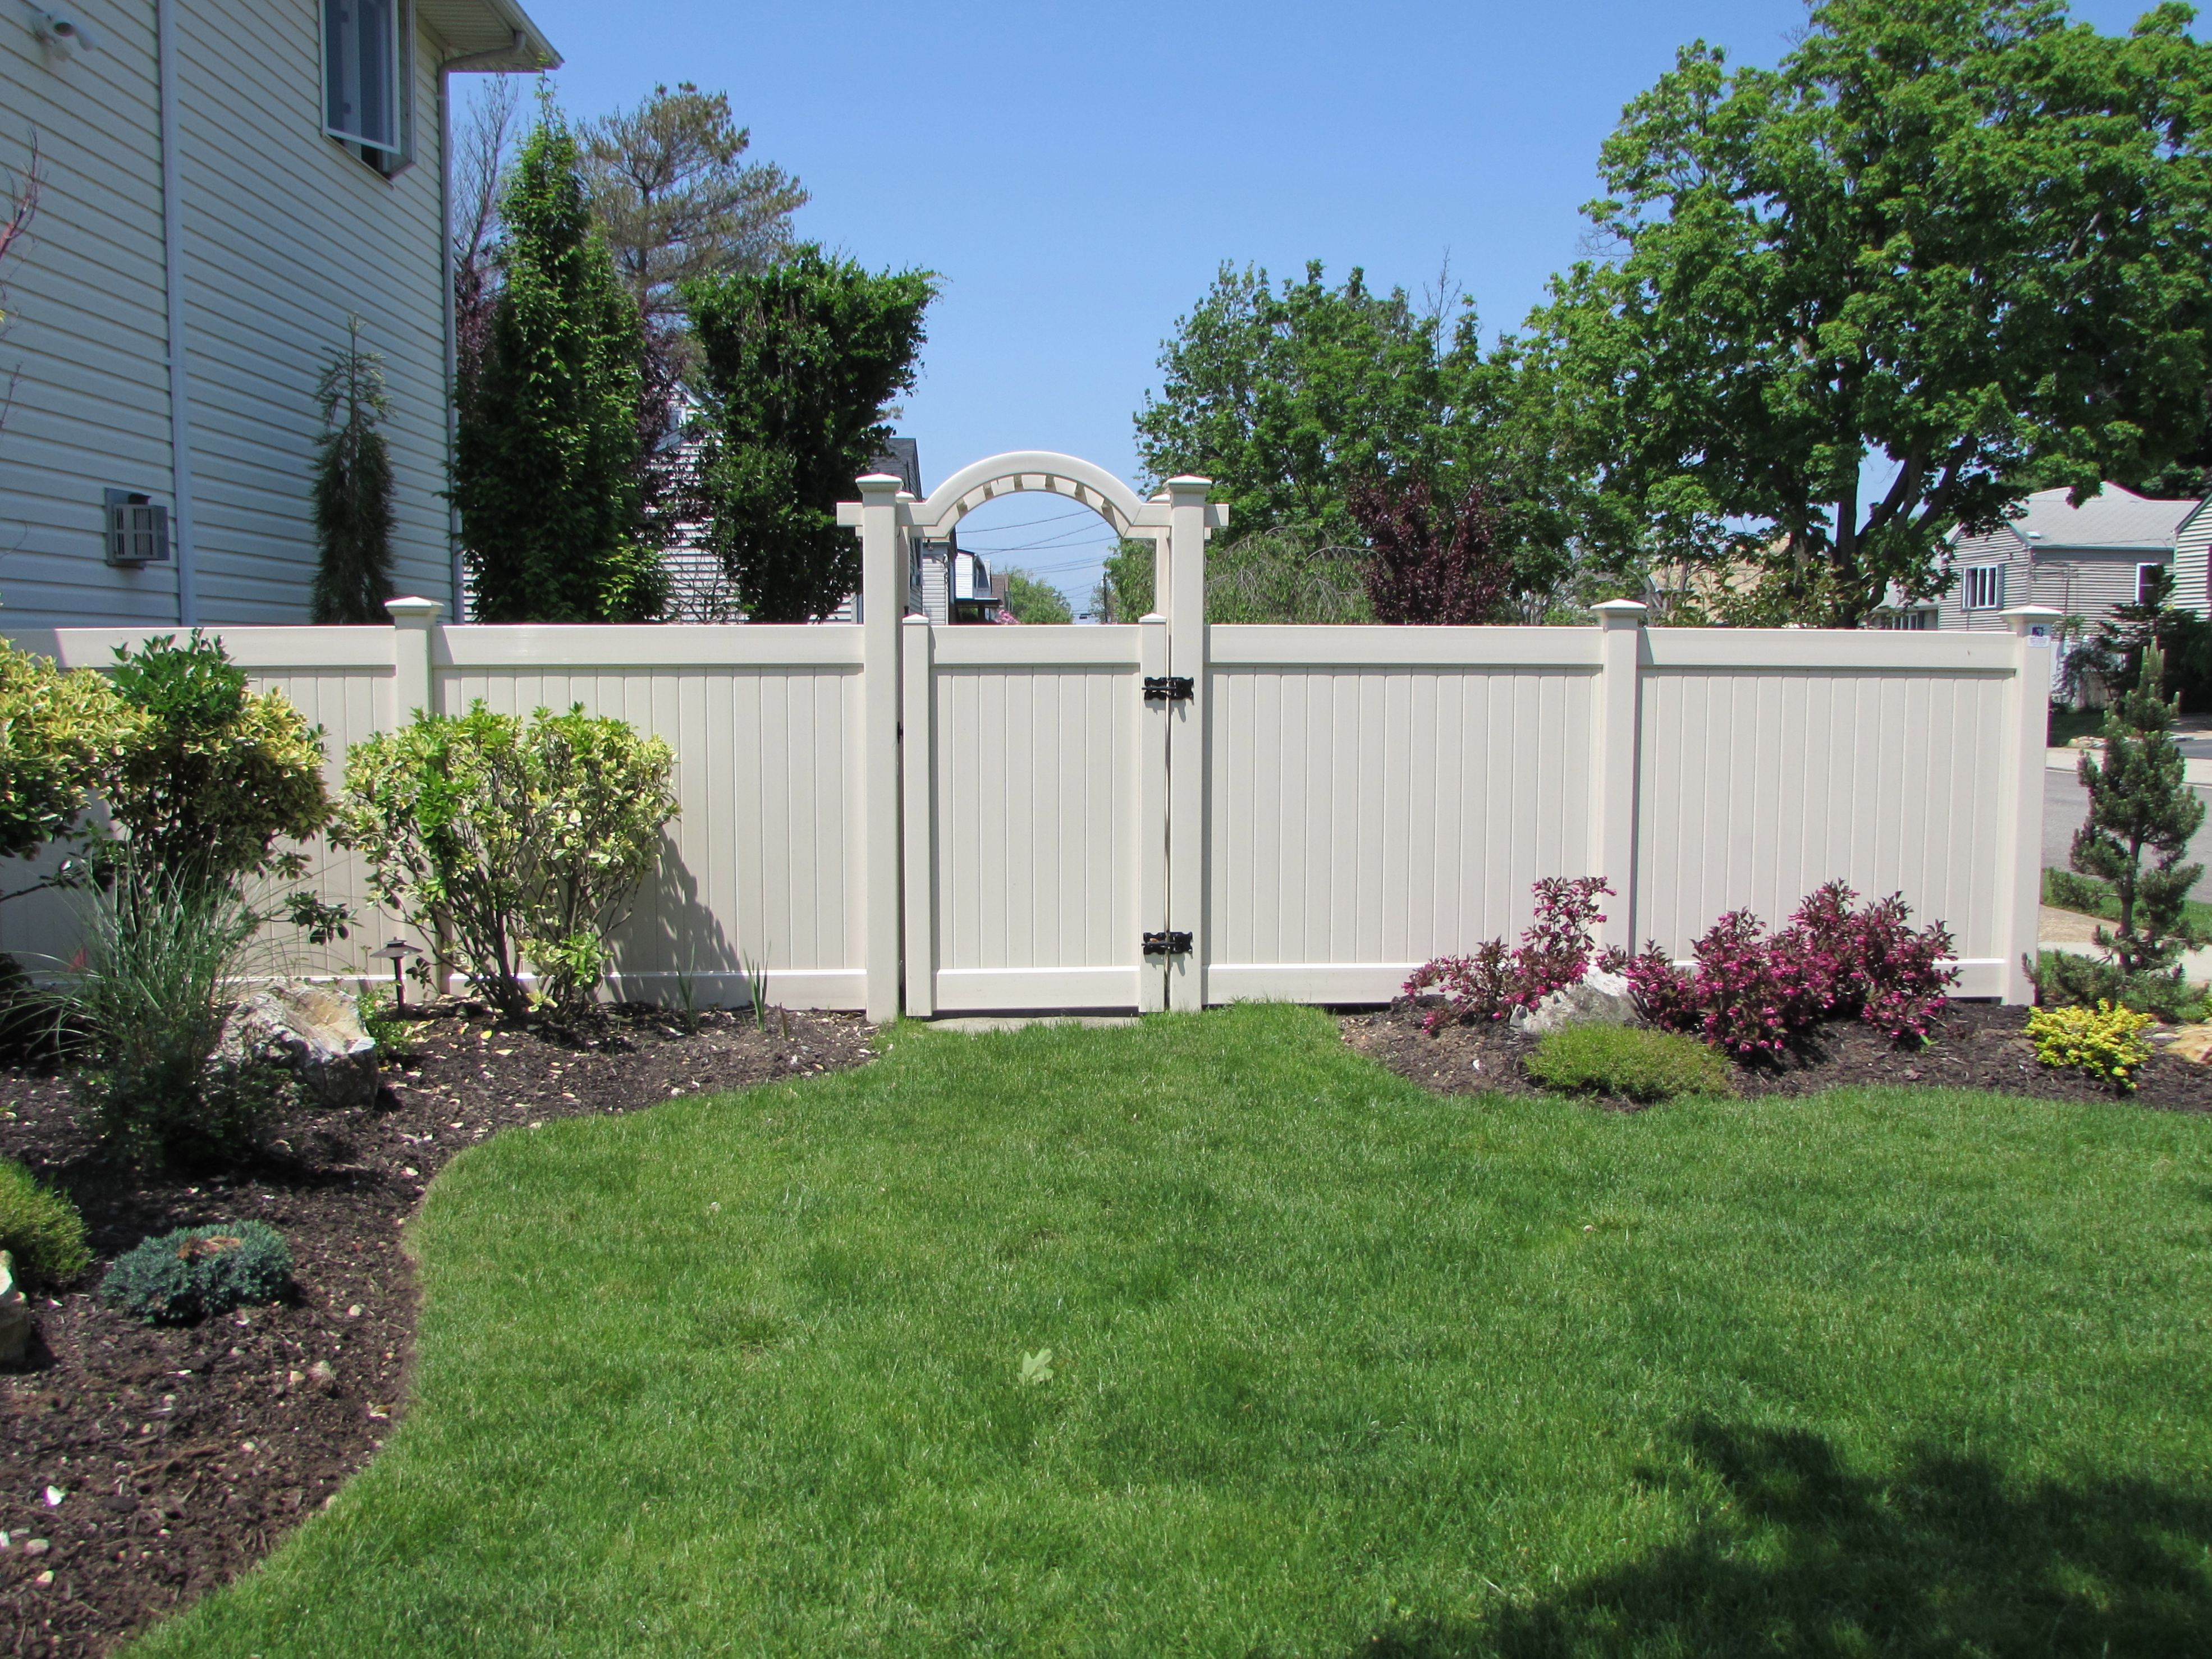 42 Wide Pvc Grand Arbor With 72 Infinity Solid Privacy Fence And Gate Fabricated Installed By Liberty Railing Double Virgin Vinyl